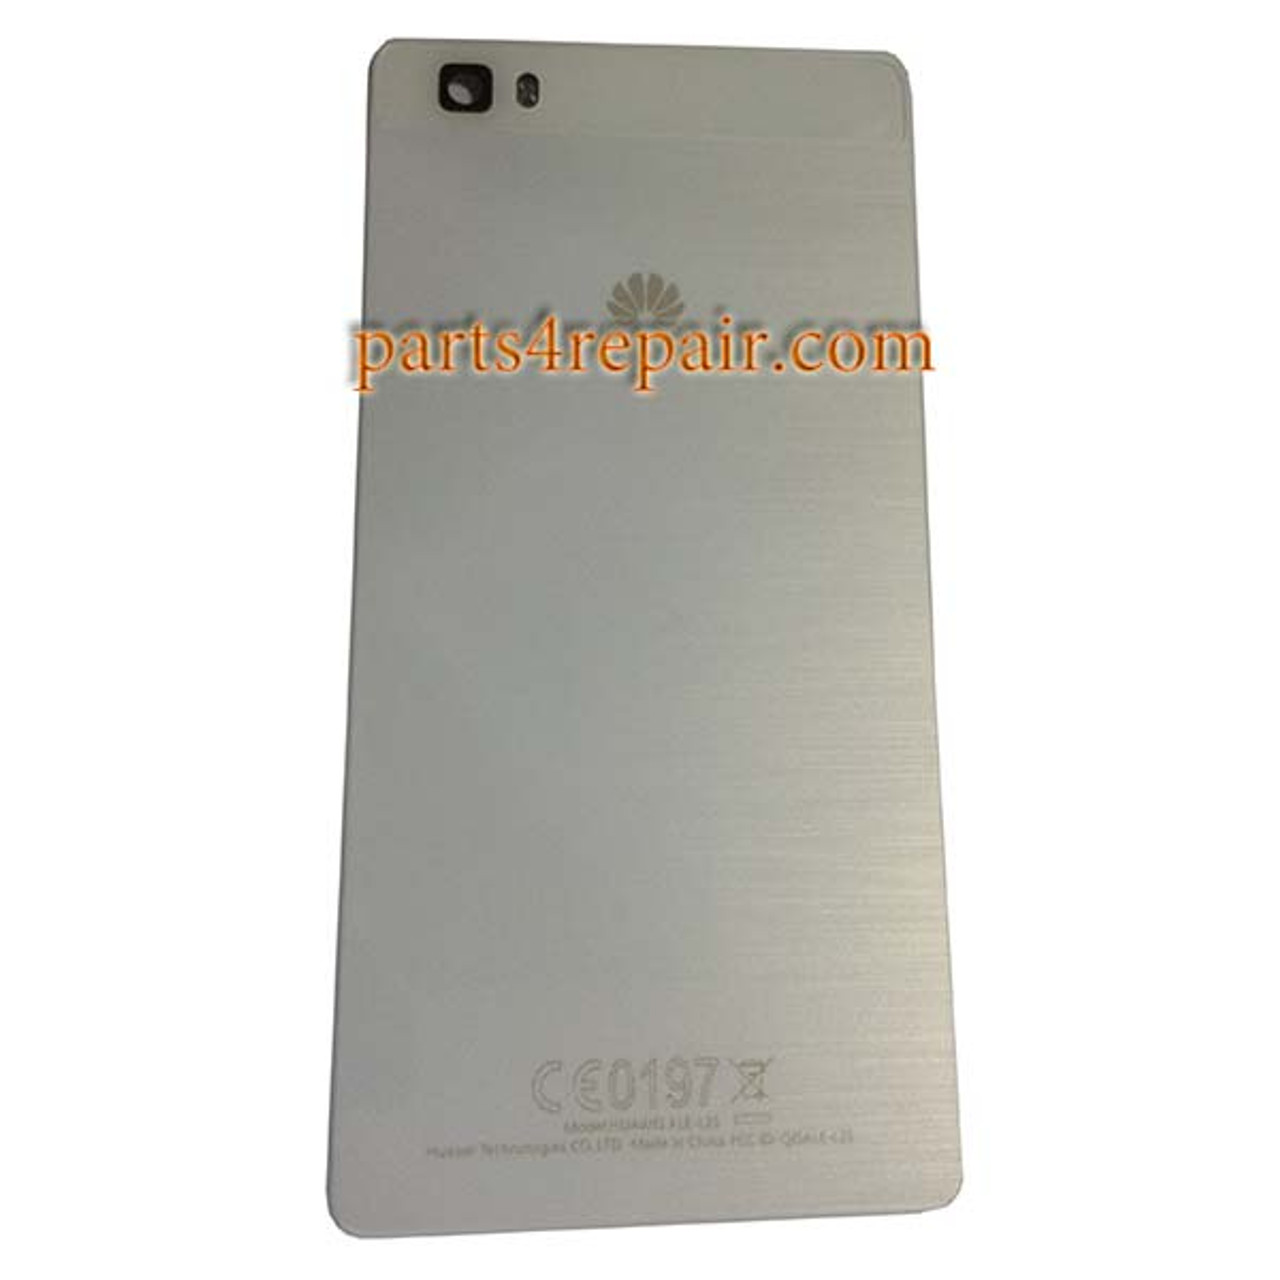 huawei p8 lite white. back cover for huawei p8 lite from www.parts4repair.com white h